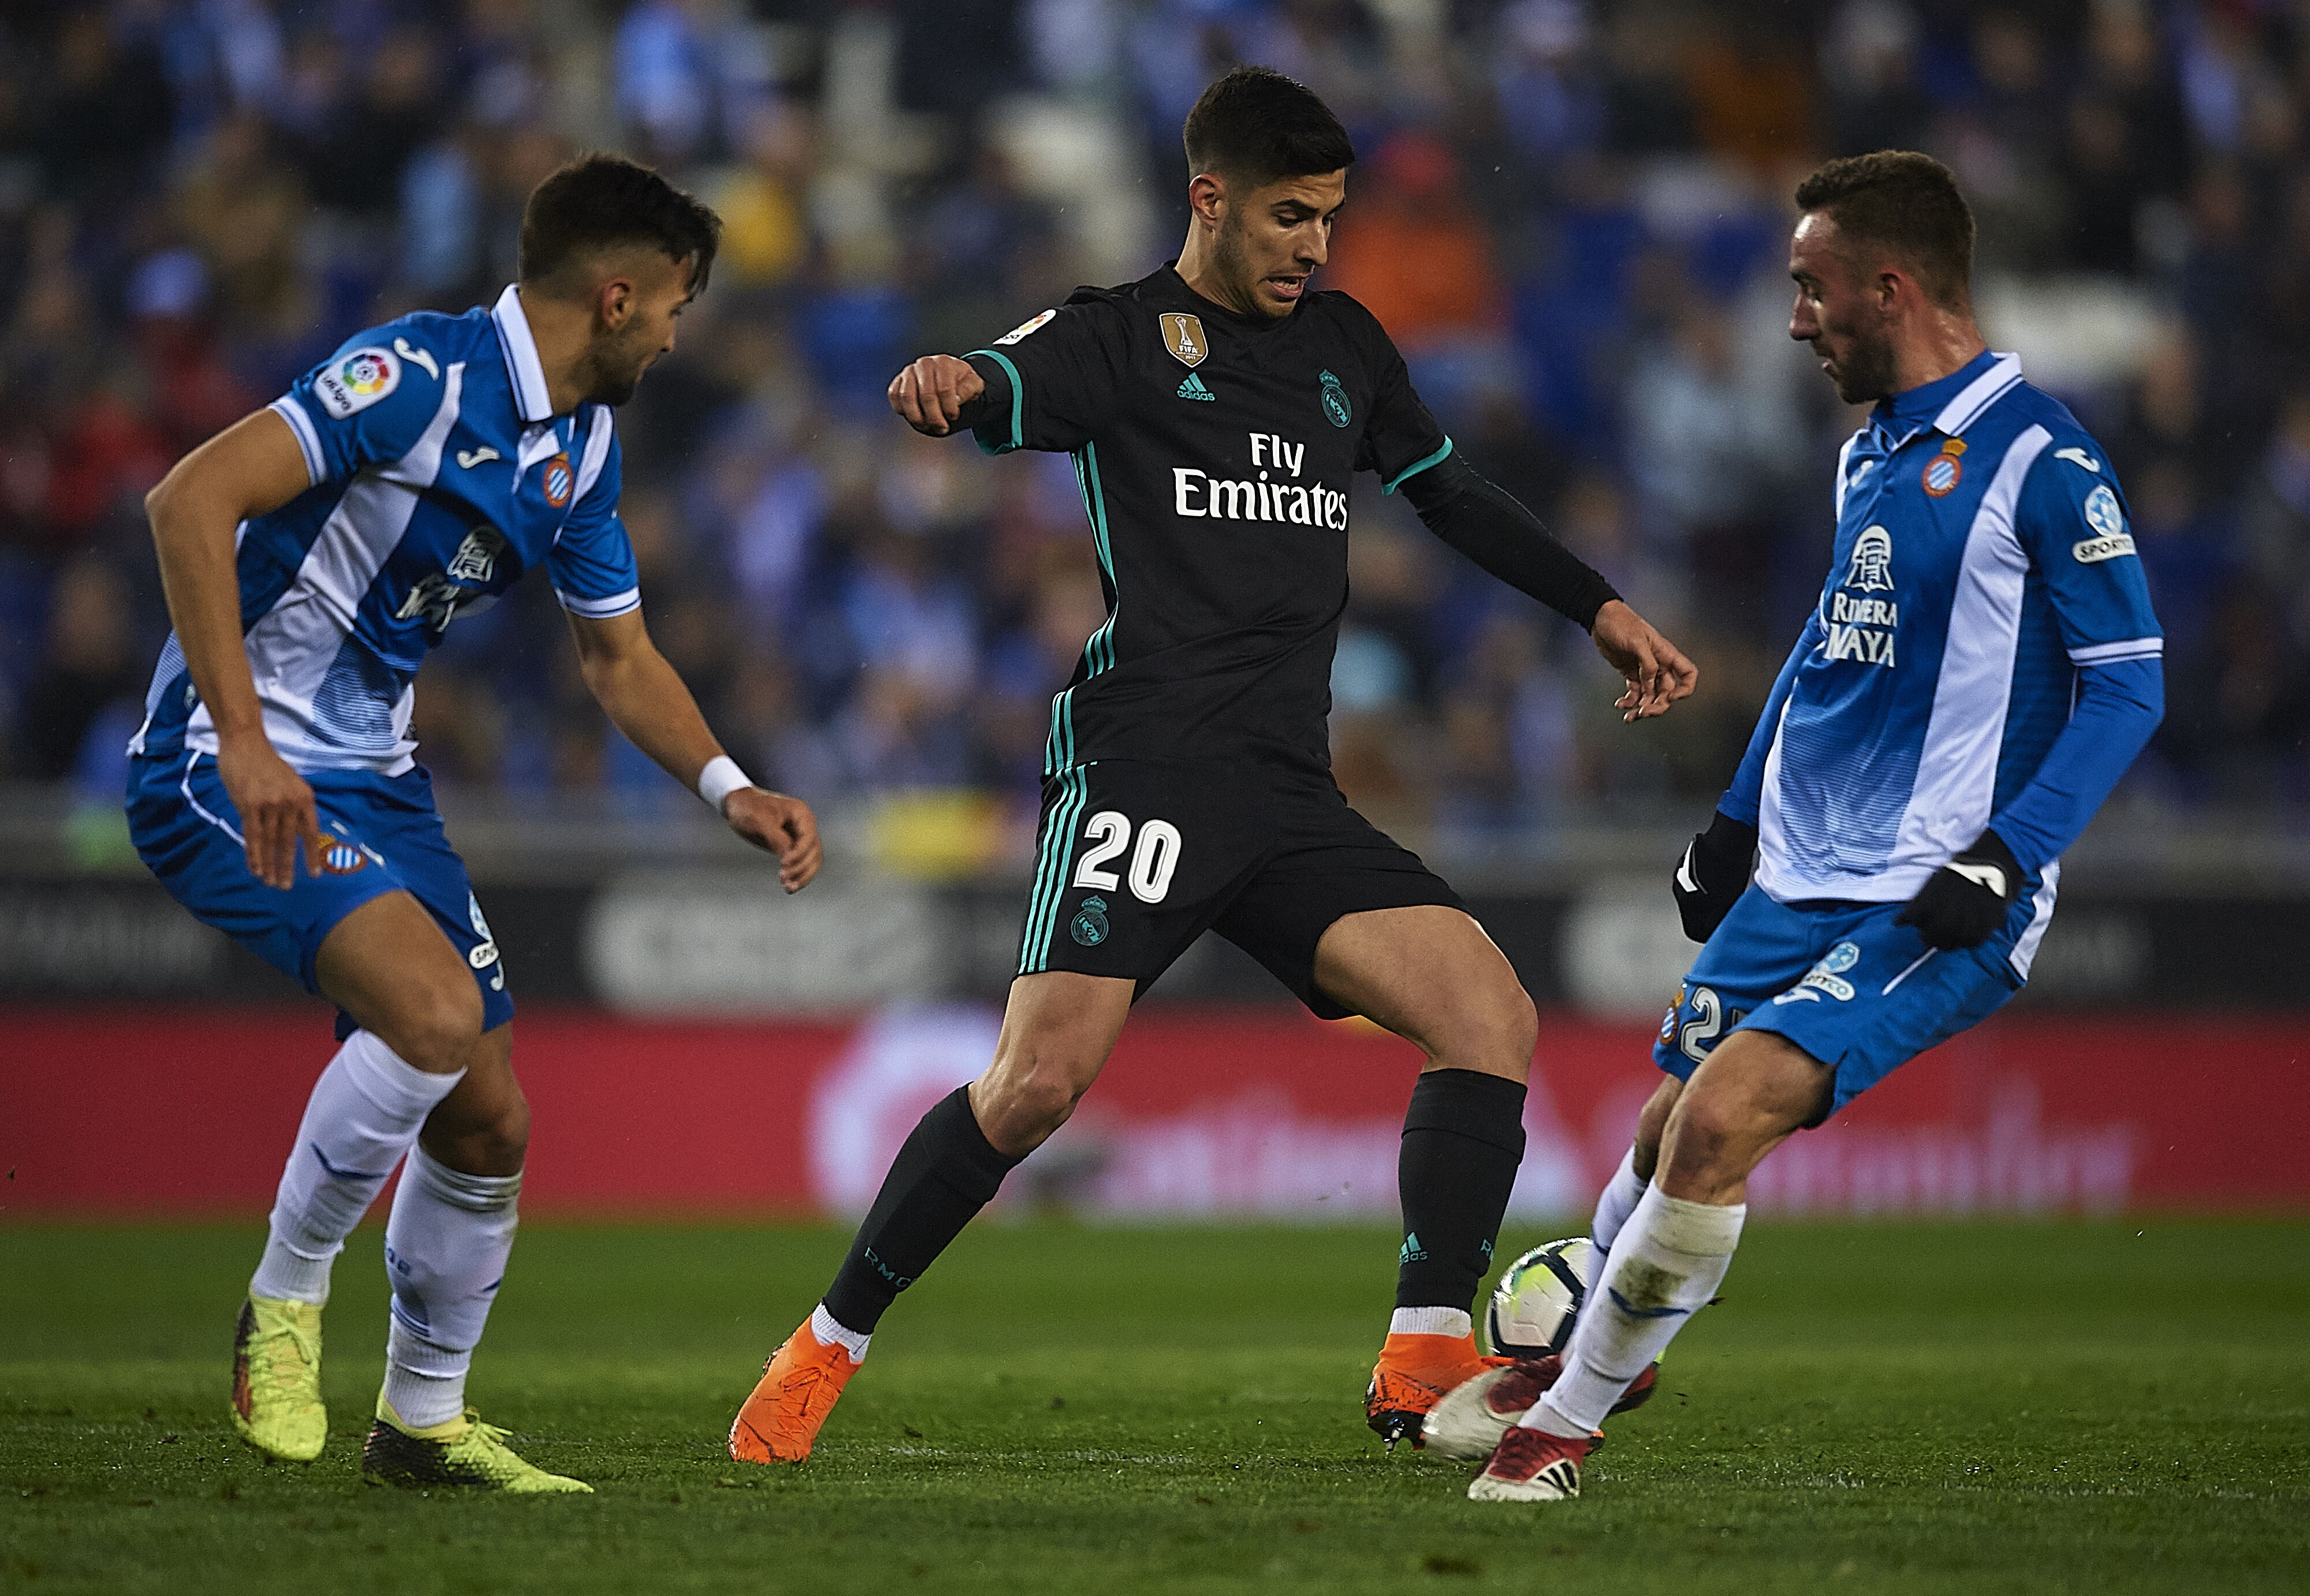 Espanyol 0 - 1 R Madrid - Match Report & Highlights